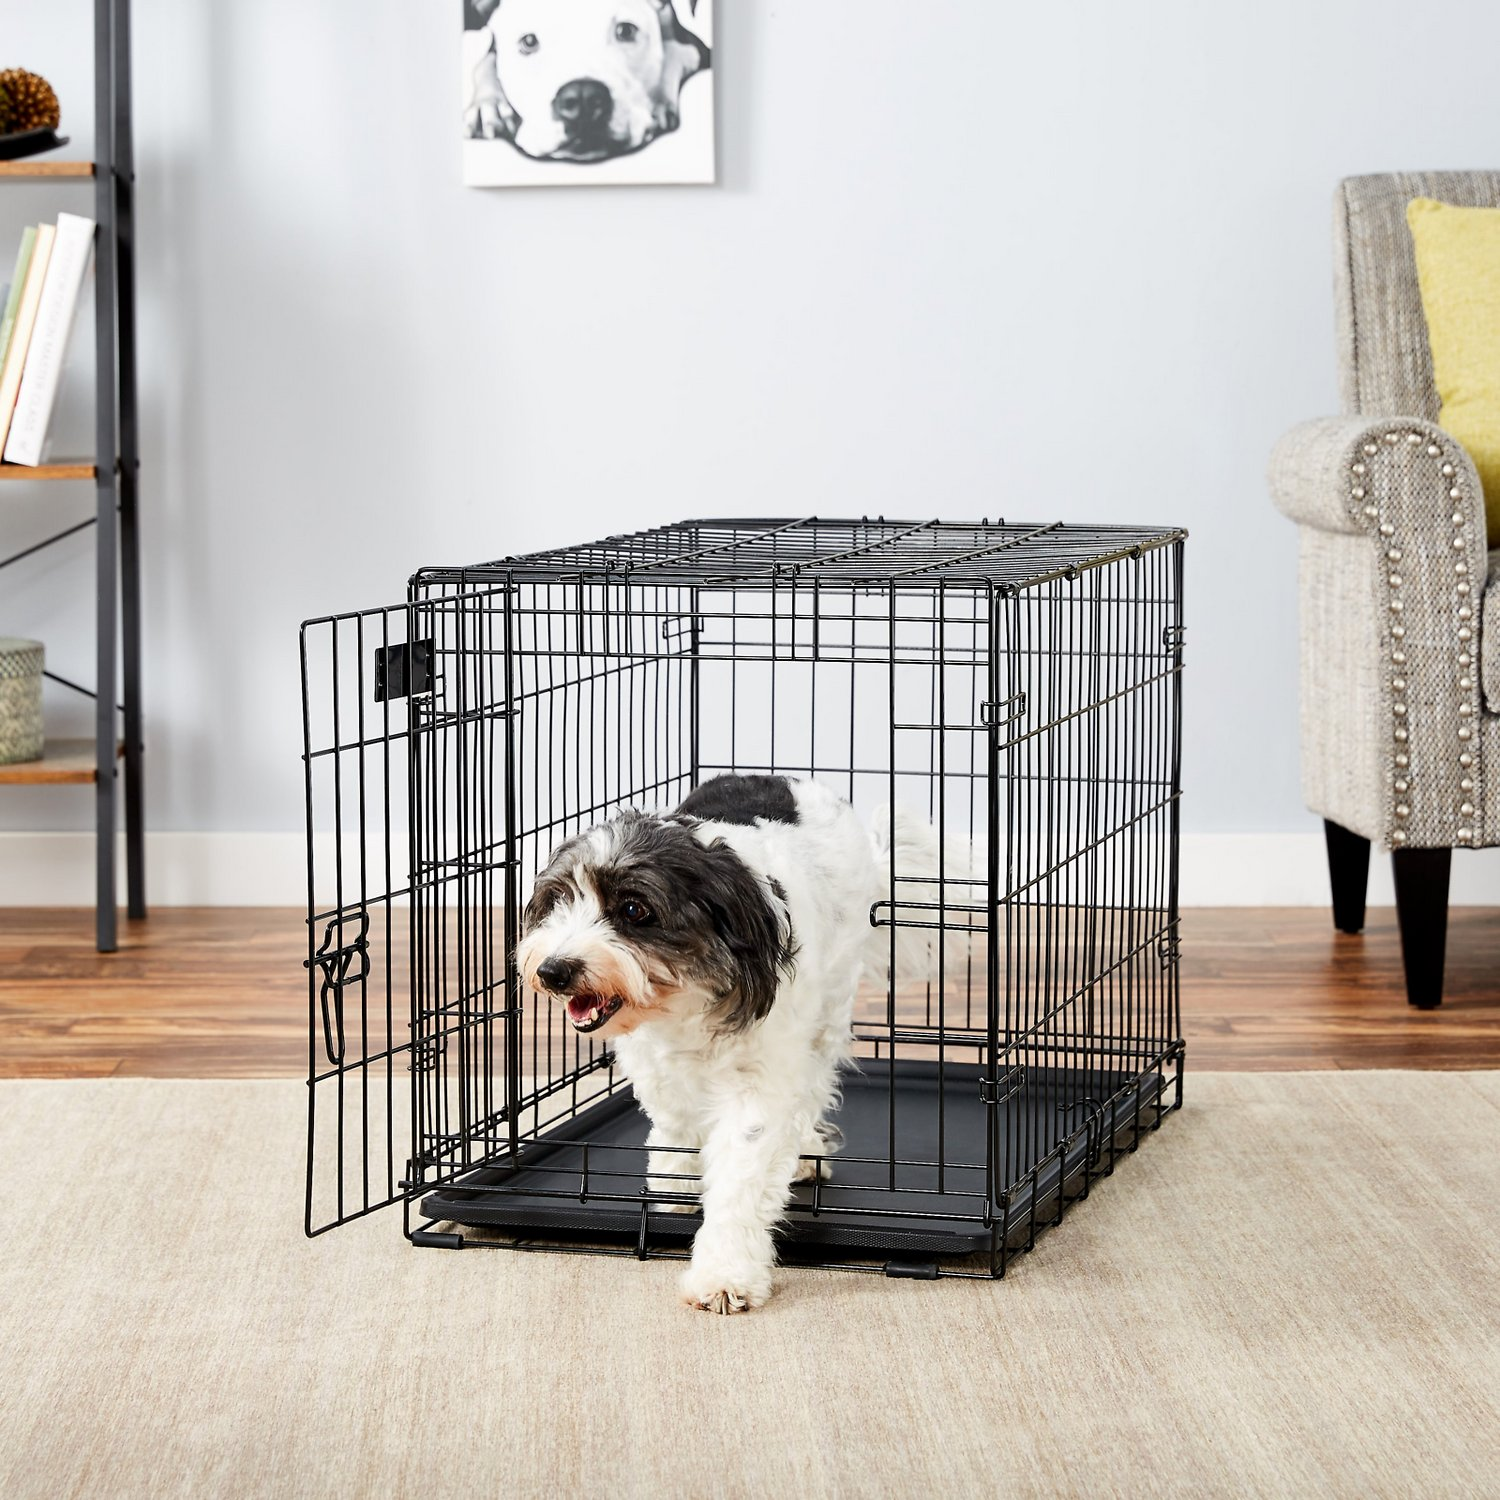 30″ Single Door Folding Metal Dog iCrate by Midwest